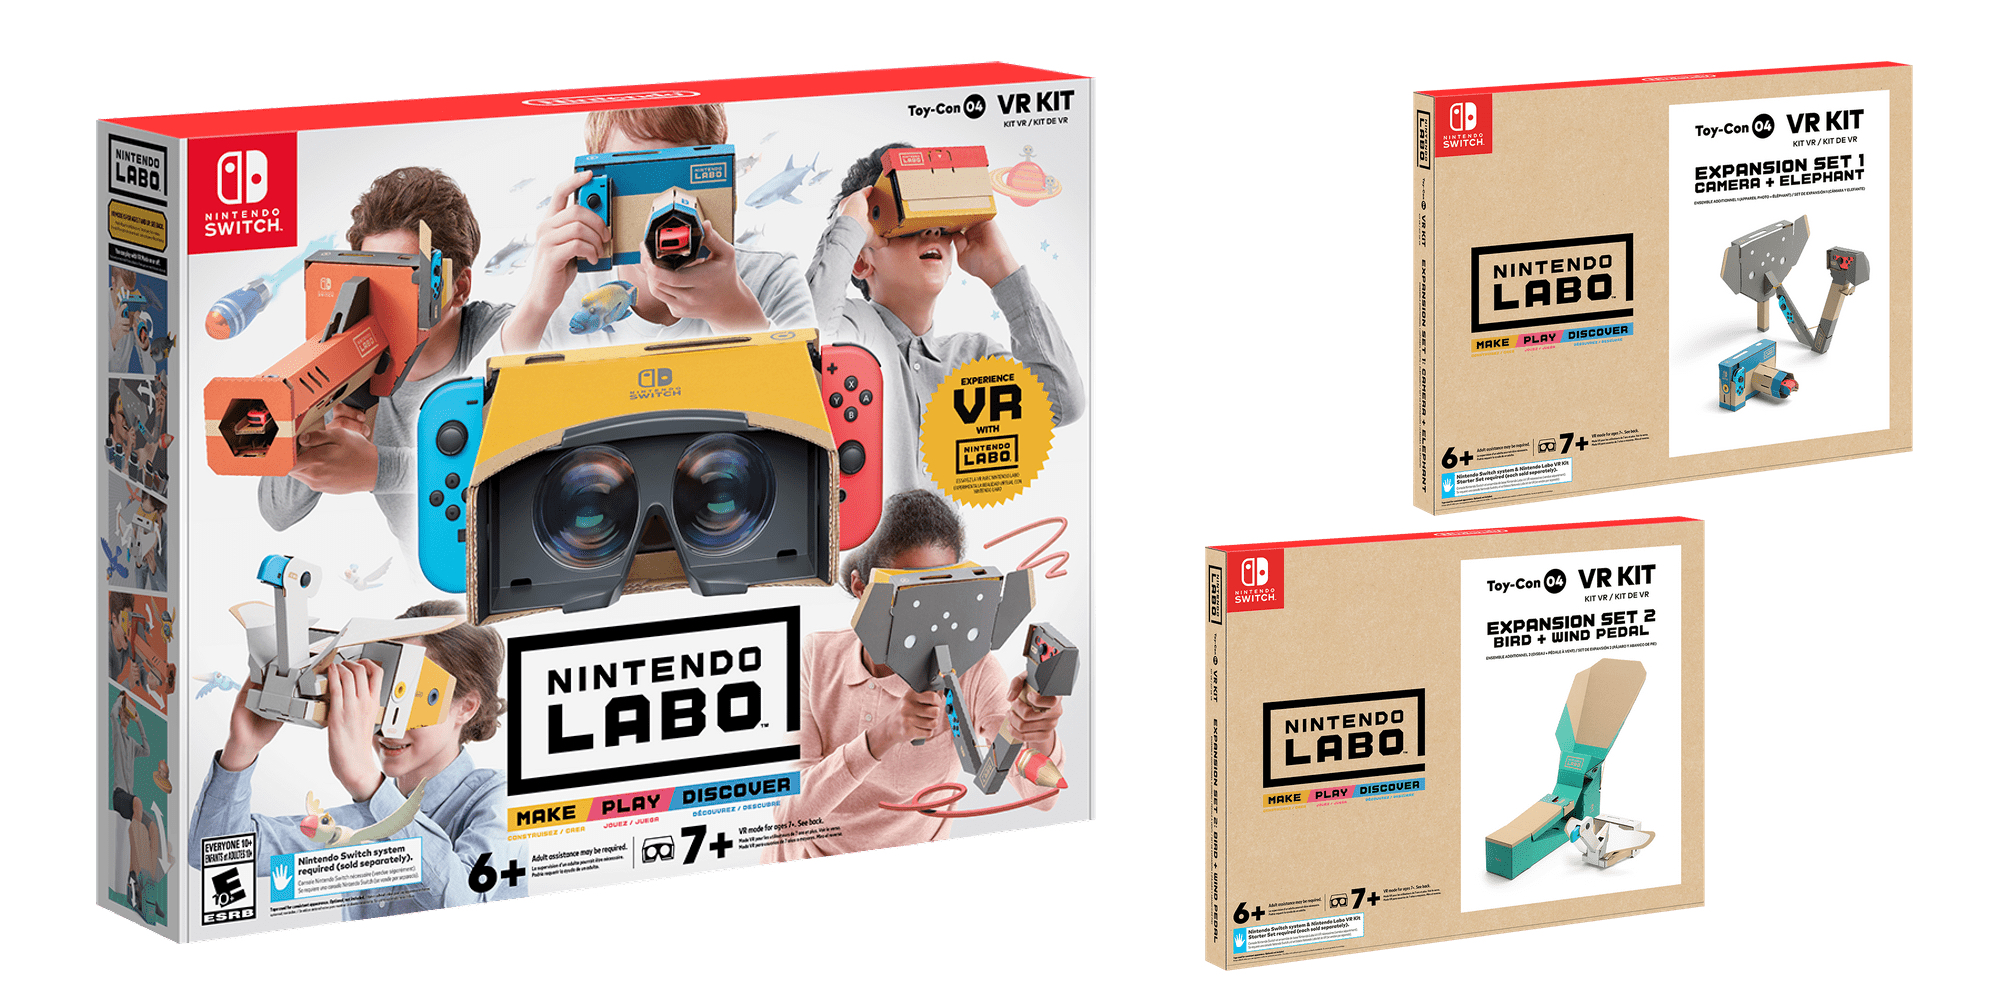 Nintendo Labo VR Kit box art